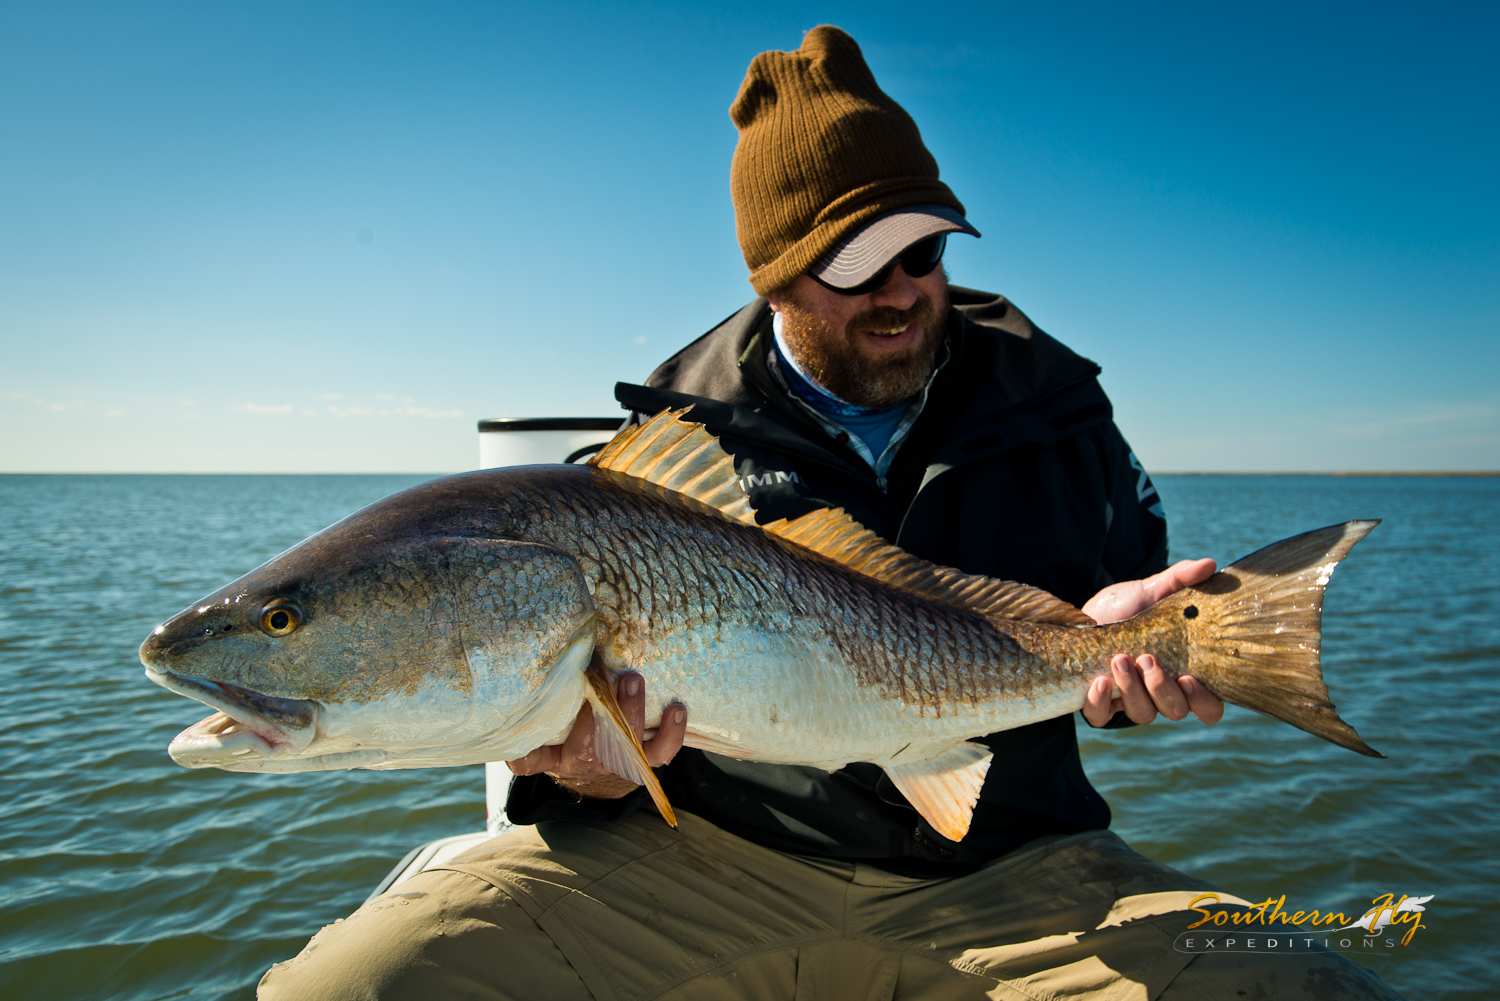 Southern Fly Expeditions best vacation fly fishing trips